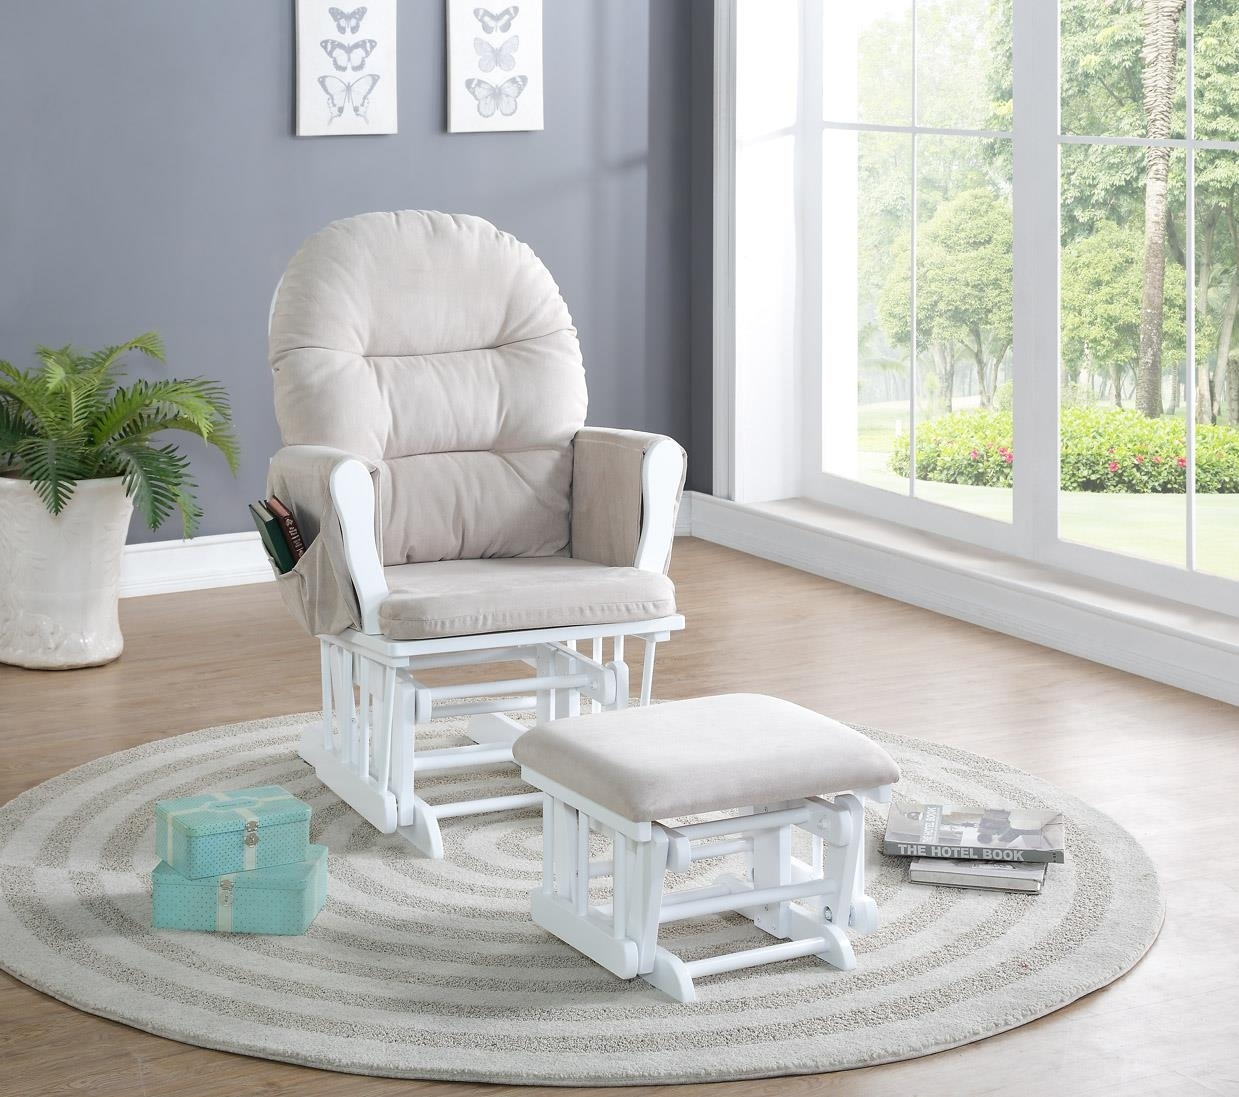 Naomi Home Brisbane Glider & Ottoman Set | Ojcommerce With Gliders With Ottoman (Photo 13 of 15)